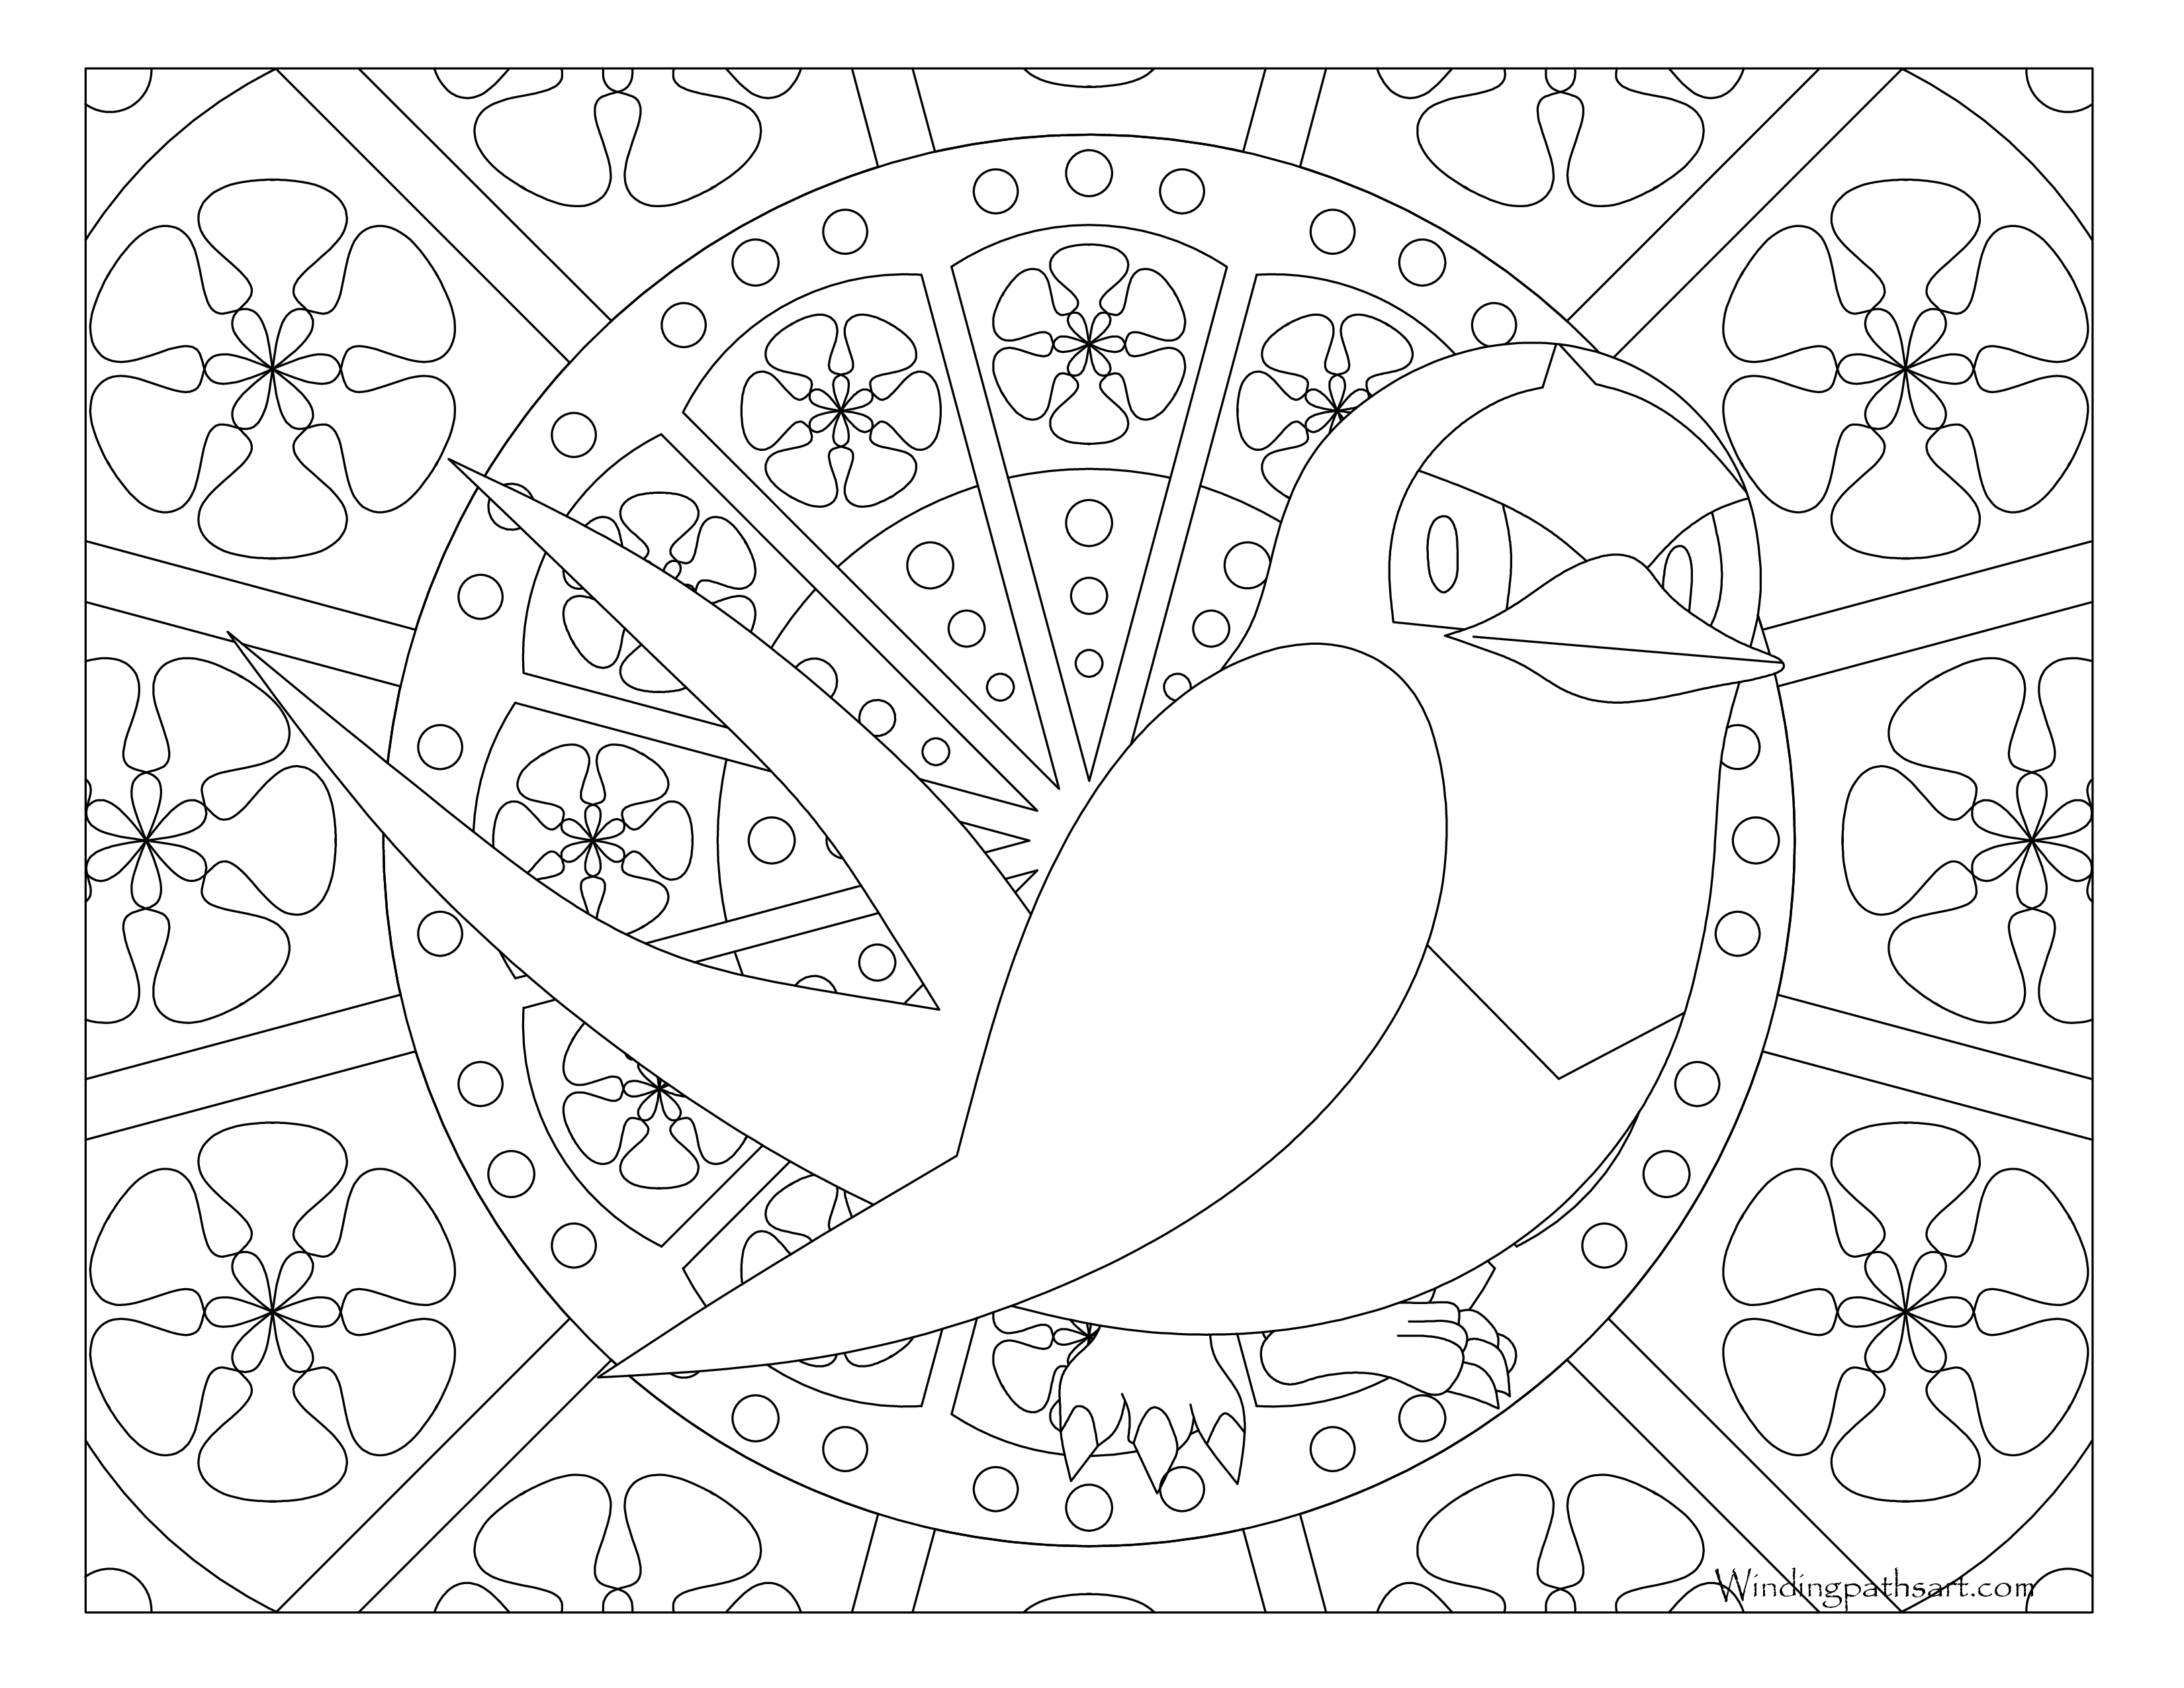 276 Taillow Pokemon Coloring Page Windingpathsart